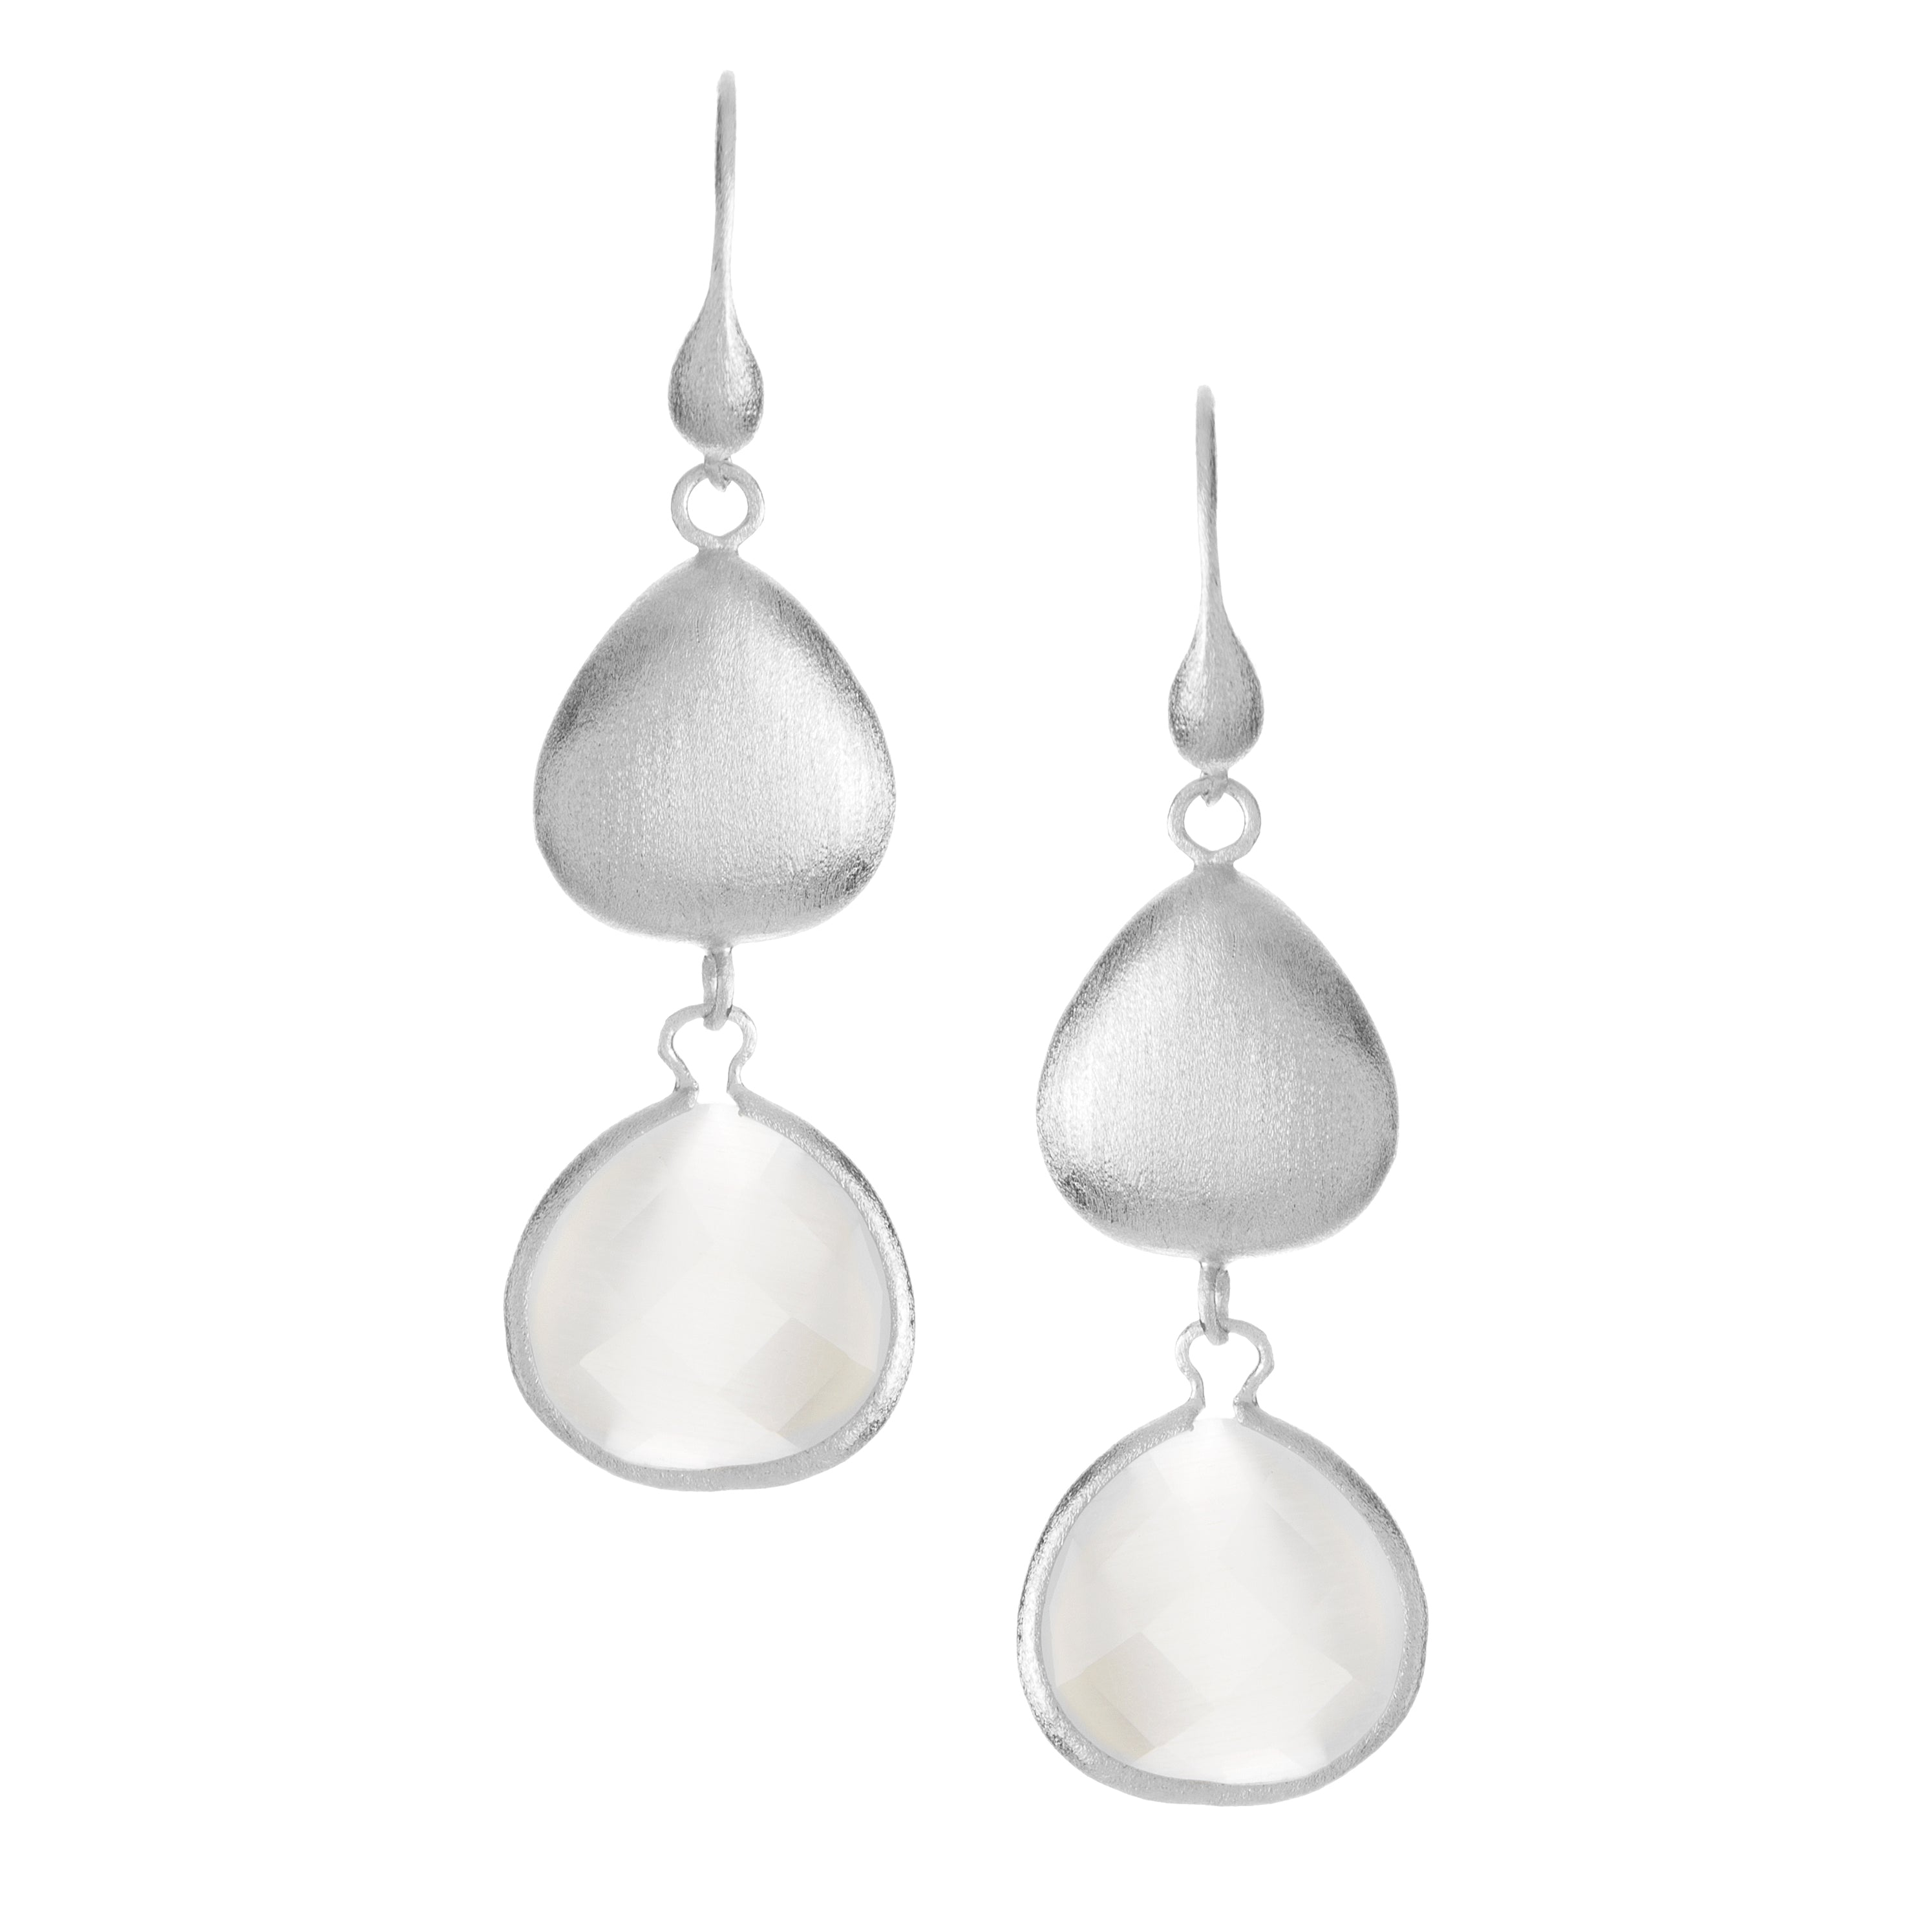 Rhodium White Cat's Eye + Satin Pebble Dangle Earrings